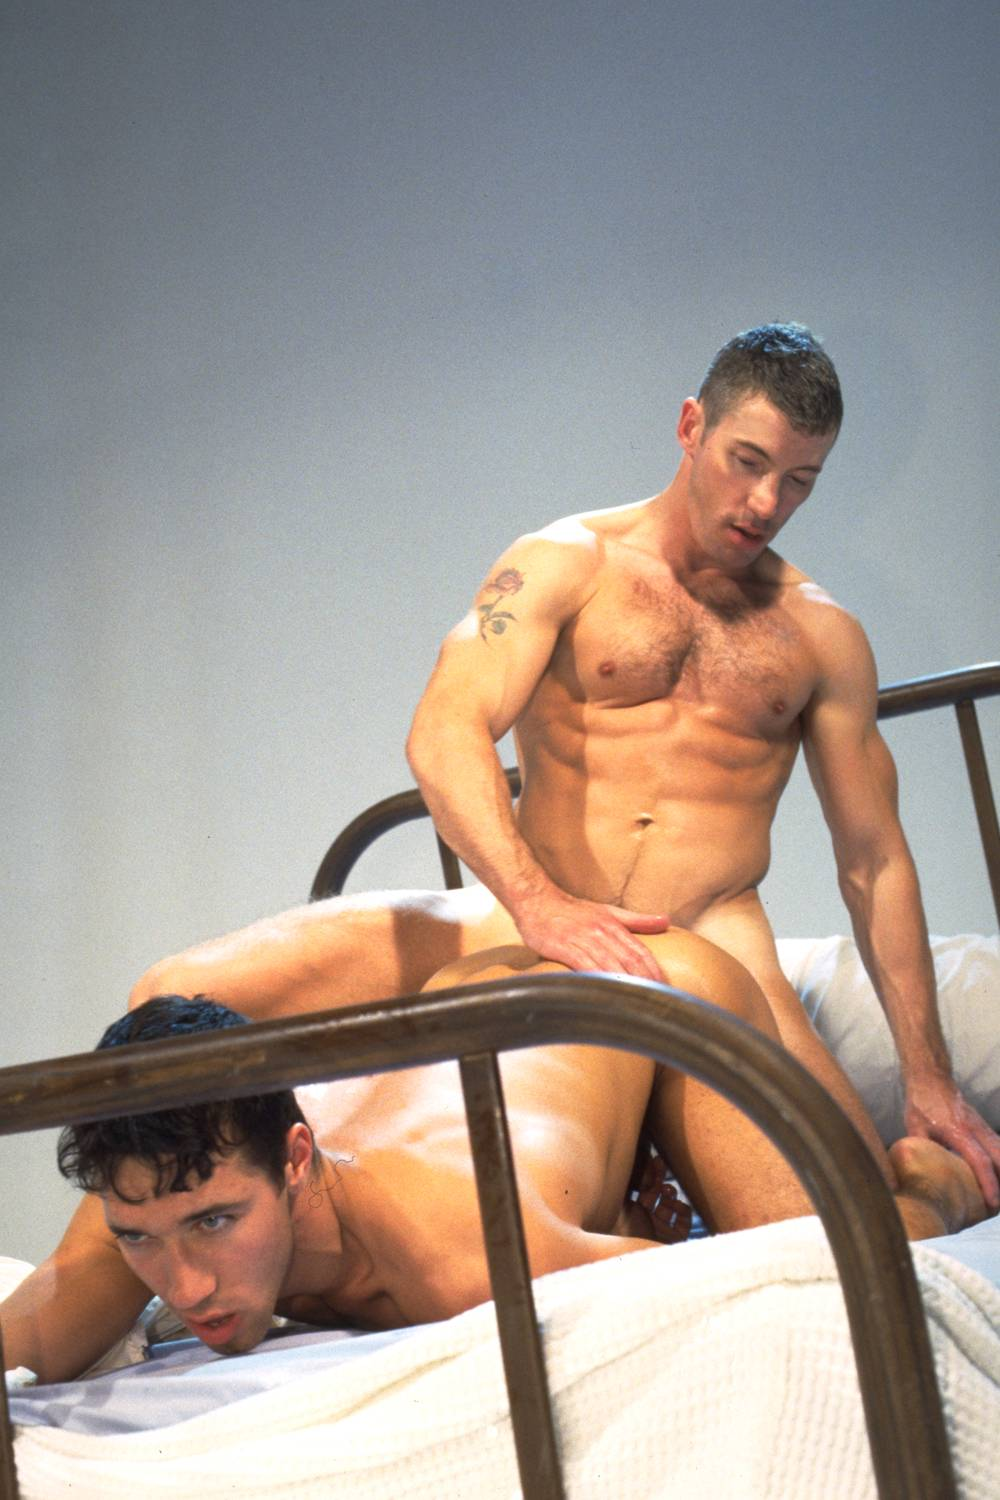 Aiden Shaw fuck Marcus Iron gay hot daddy dude porn Descent